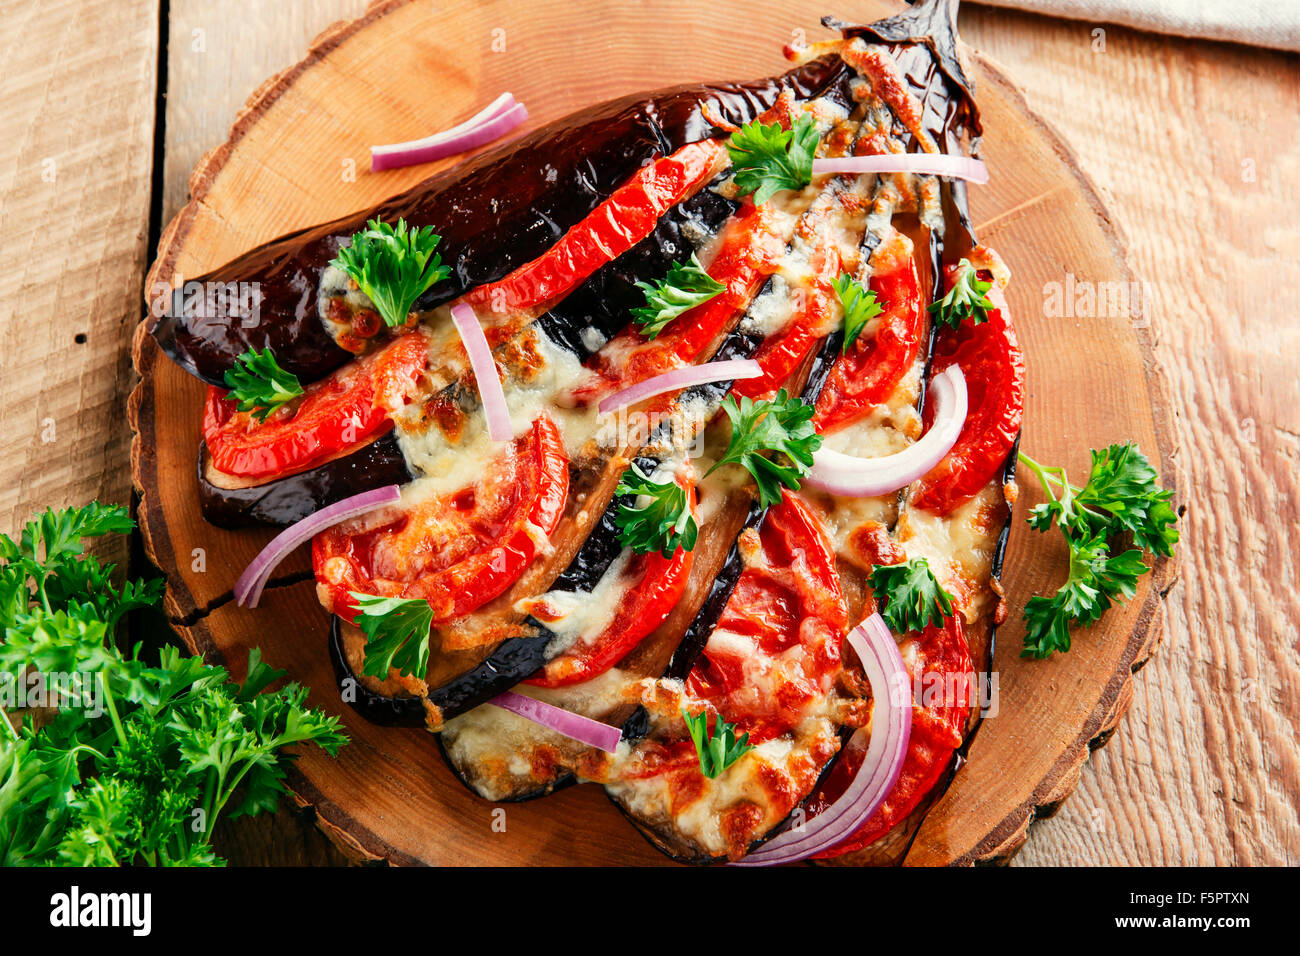 baked eggplant with cheese and tomatoes on a wooden surface Stock Photo